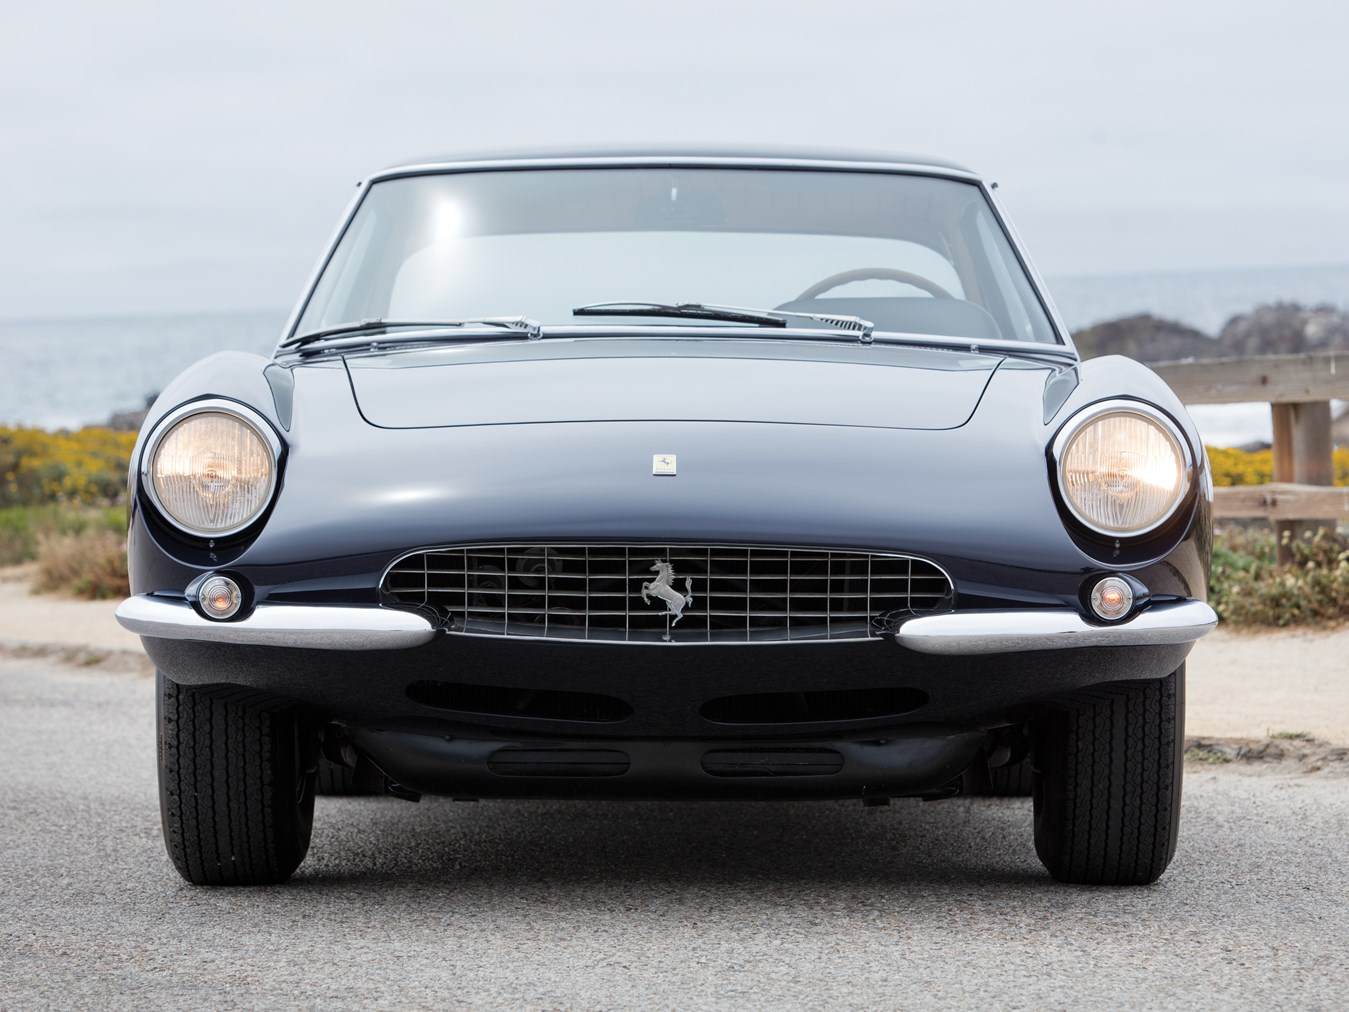 1965 Ferrari 500 Superfast Series I by Pininfarina